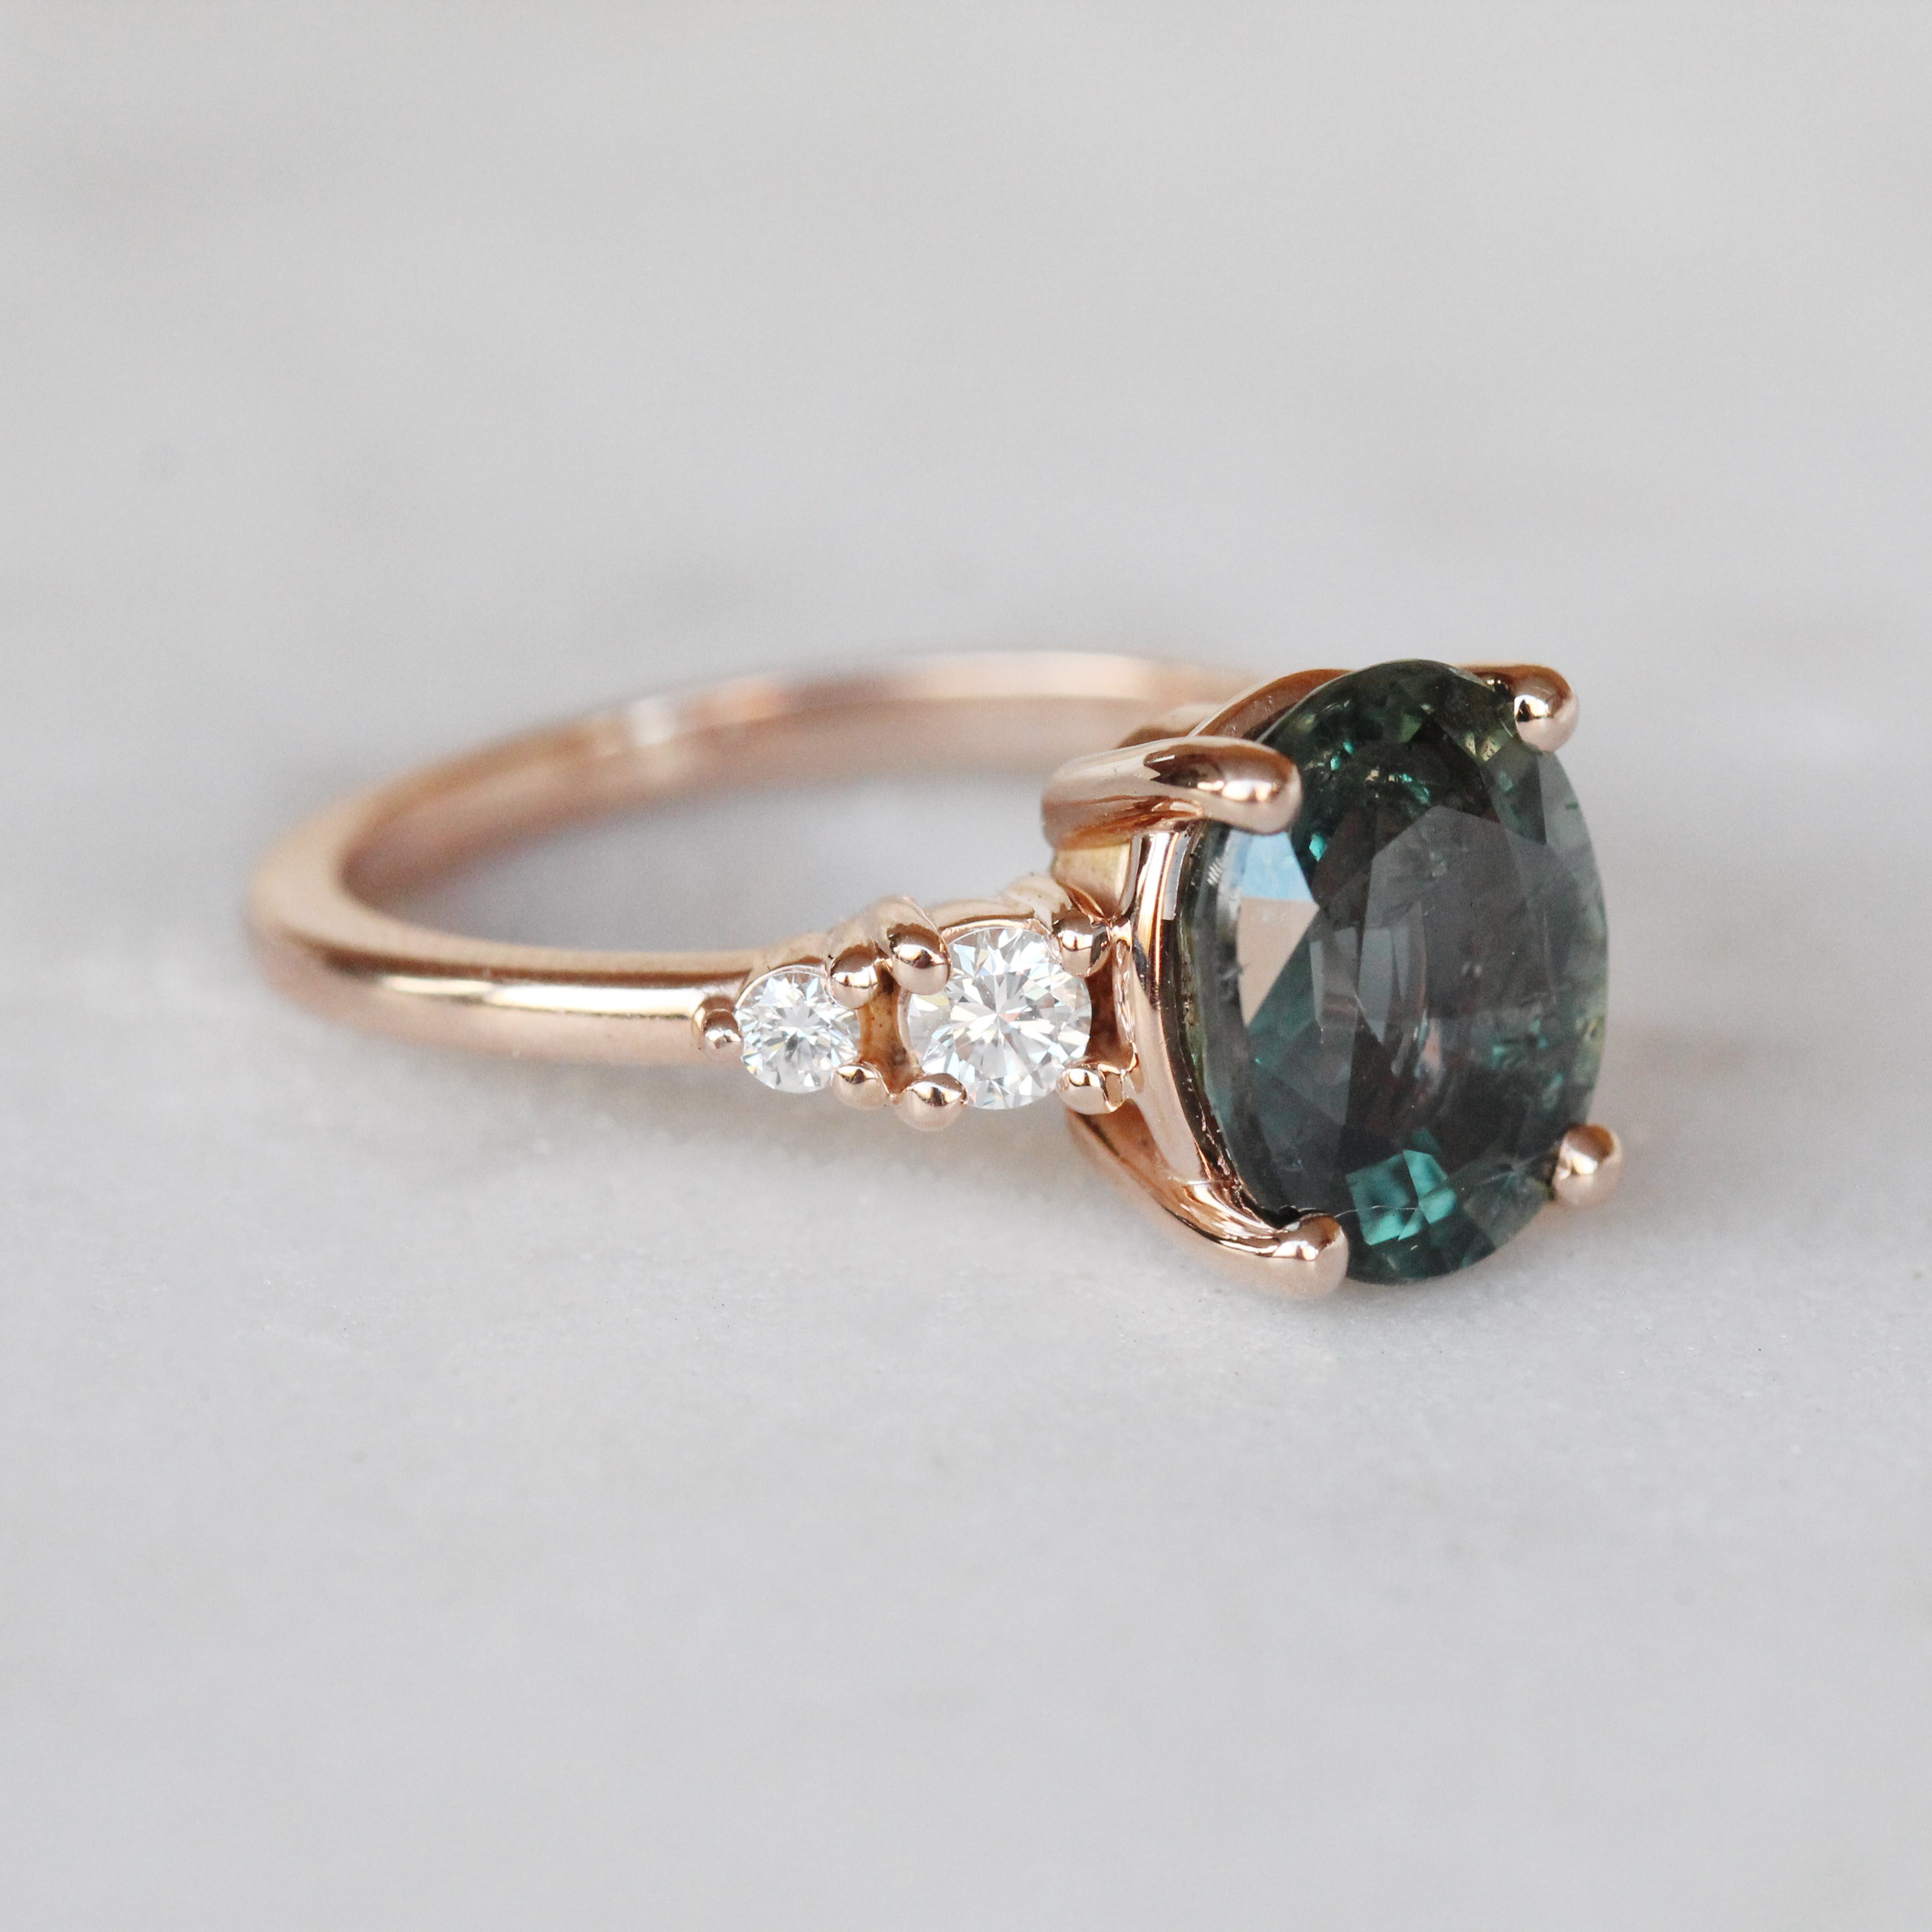 Jesse Ring with 3.3 ct Teal Sapphire and Diamonds in 10k Rose Gold - Ready to Size and Ship - Midwinter Co. Alternative Bridal Rings and Modern Fine Jewelry